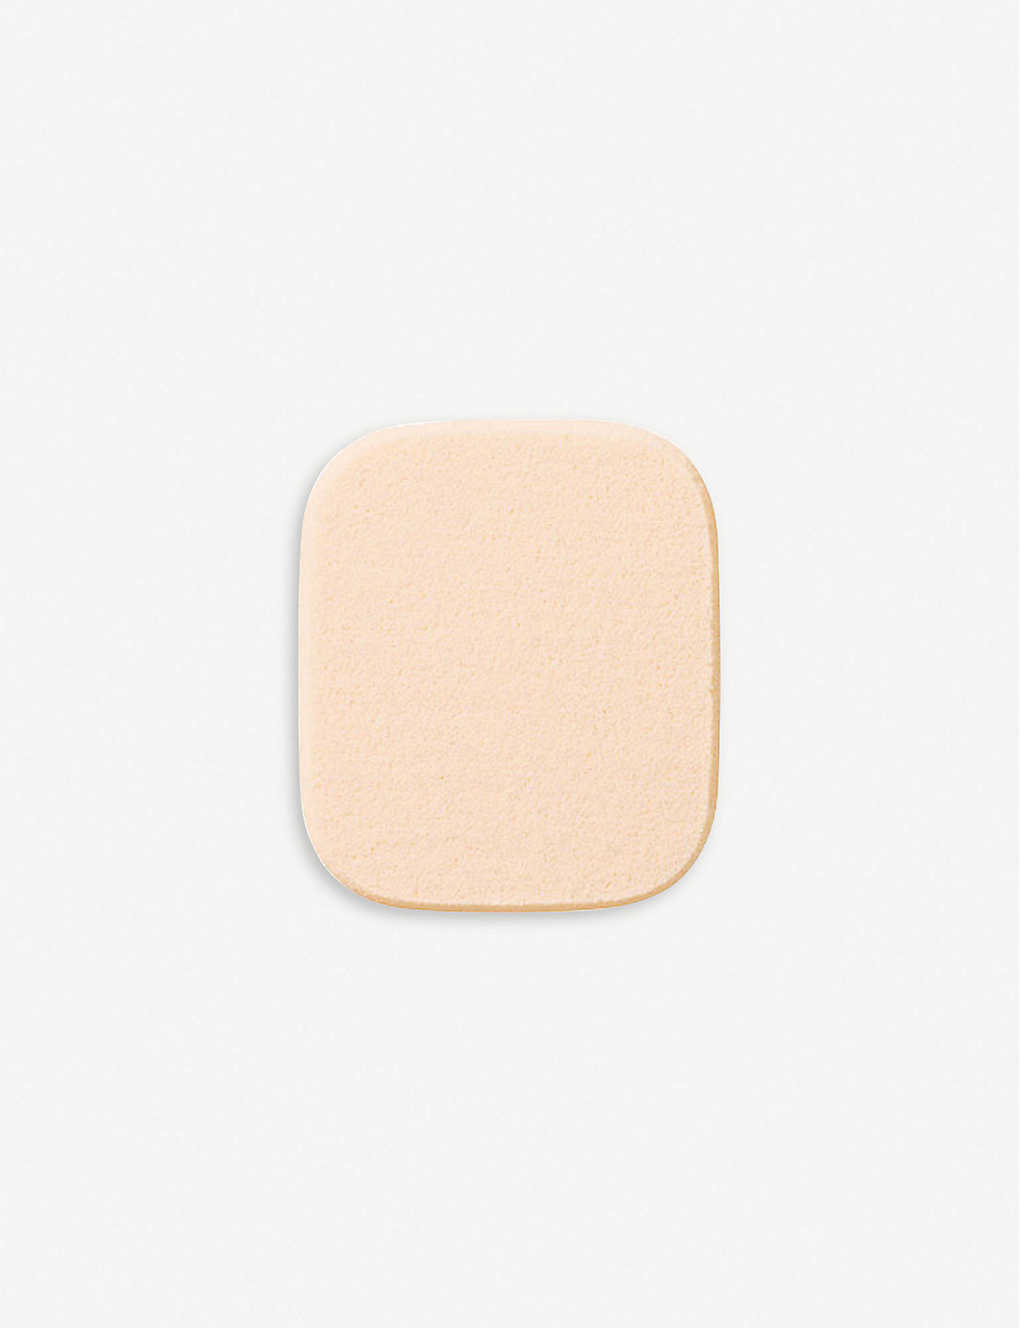 Suqqu Foundation Compact Sponge (pack Of 2) In White